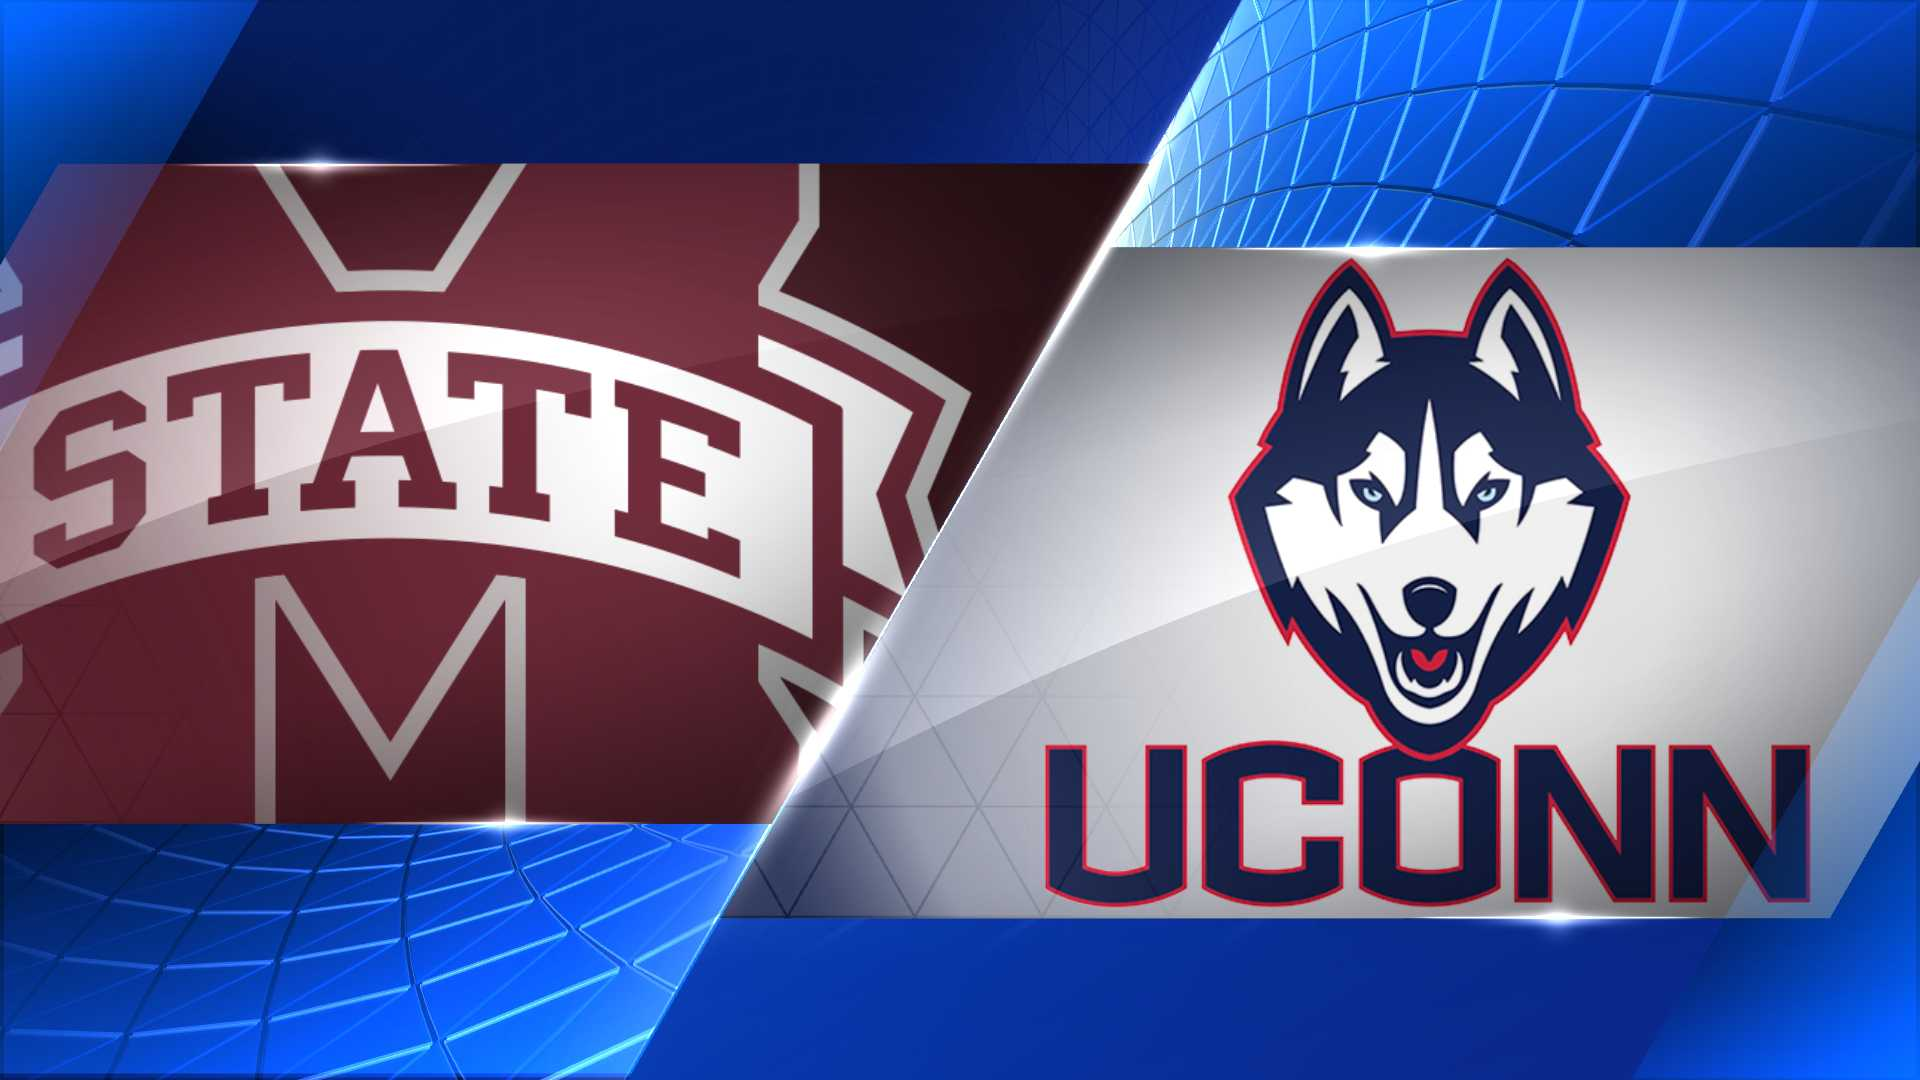 Mississippi St beat UConn in Final Four